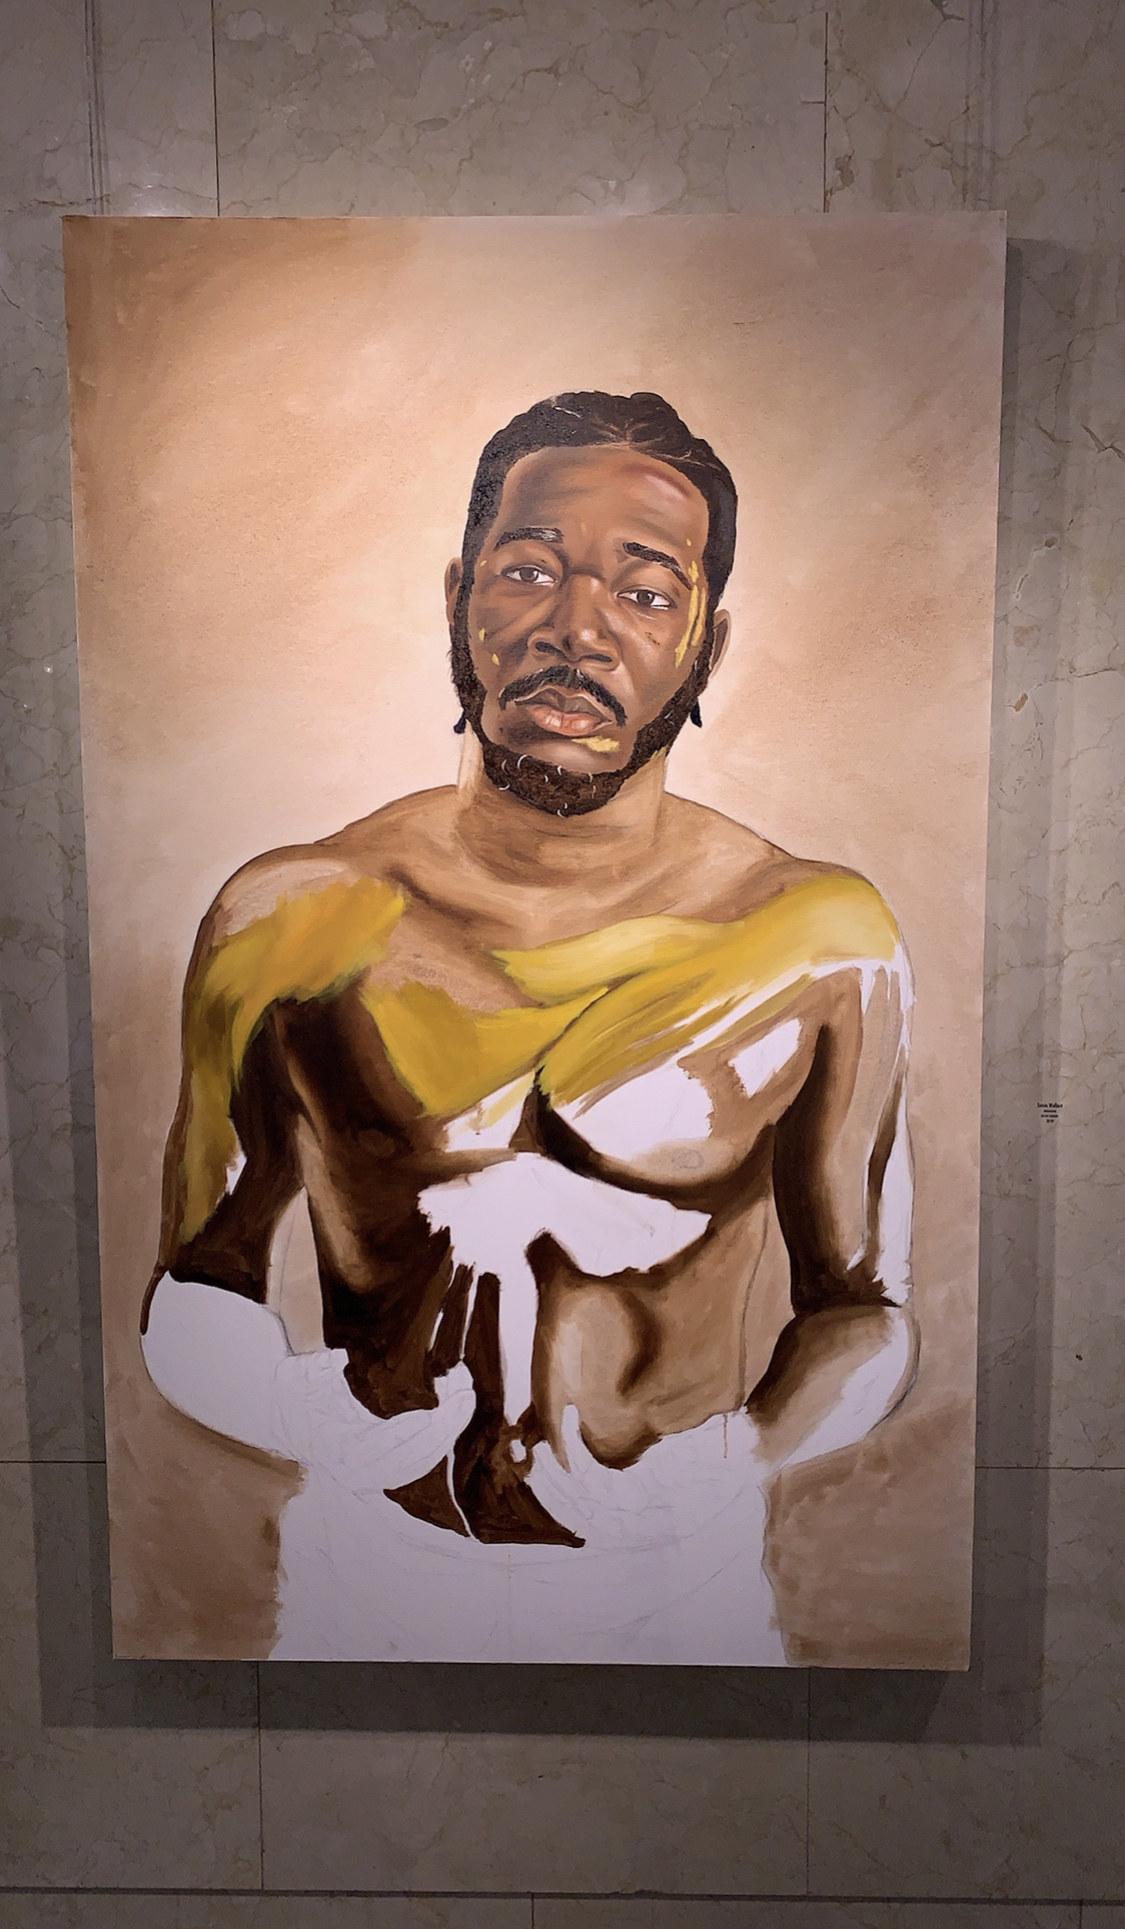 Unfinished painting of a Black man from the waist up. He doesn't have a shirt on and there is a swipe of yellow light across his chest